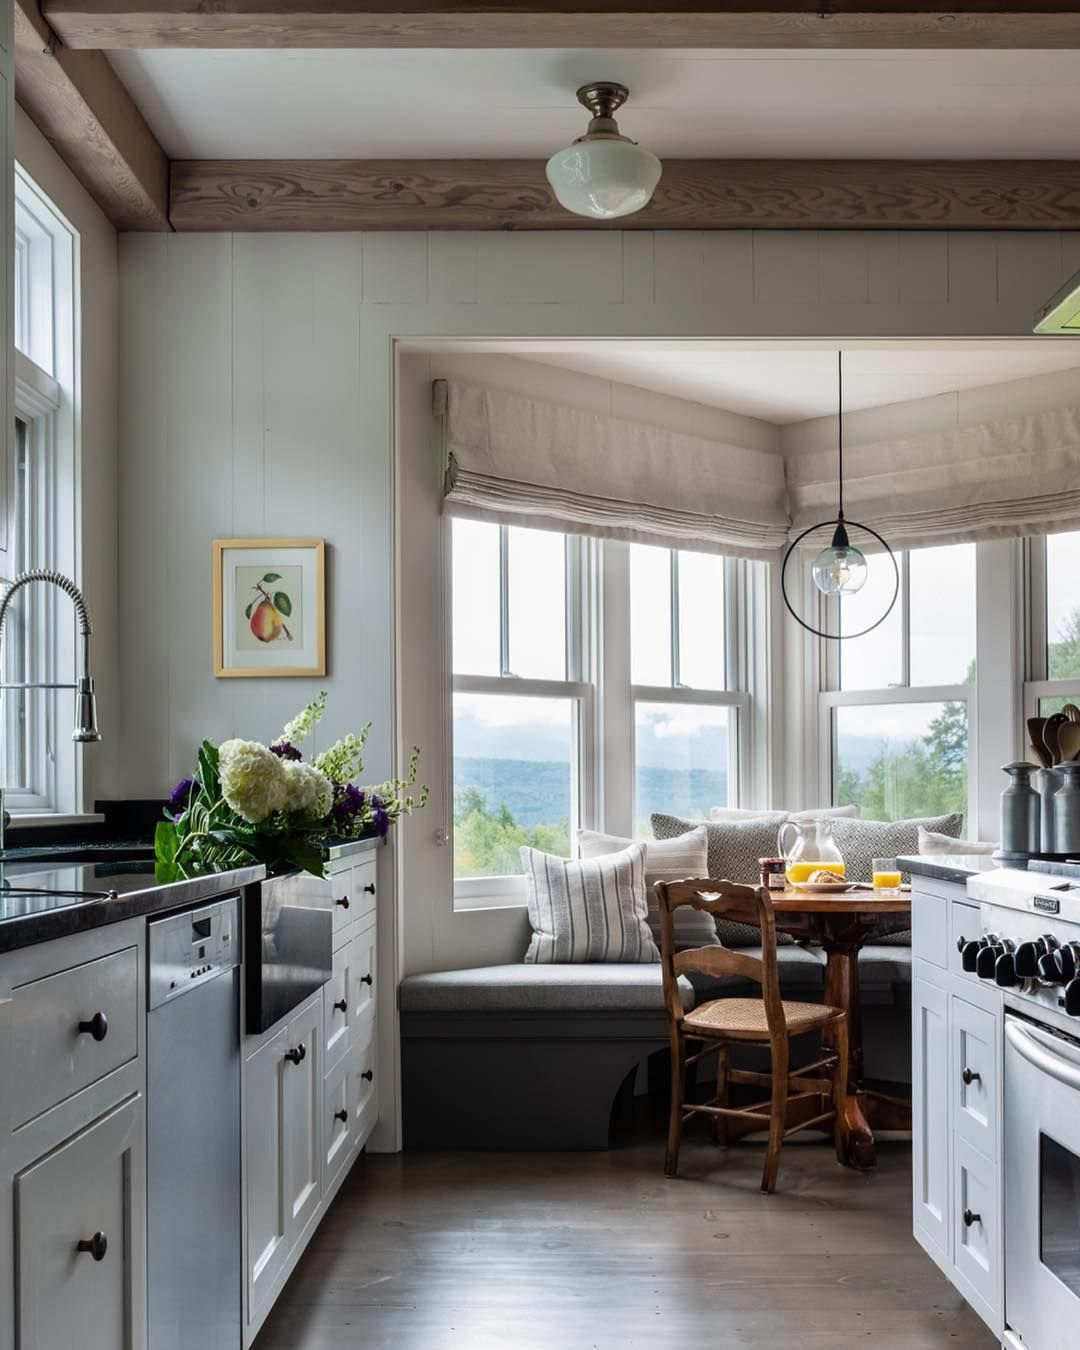 Modern Farmhouse kitchen with breakfast nook in the